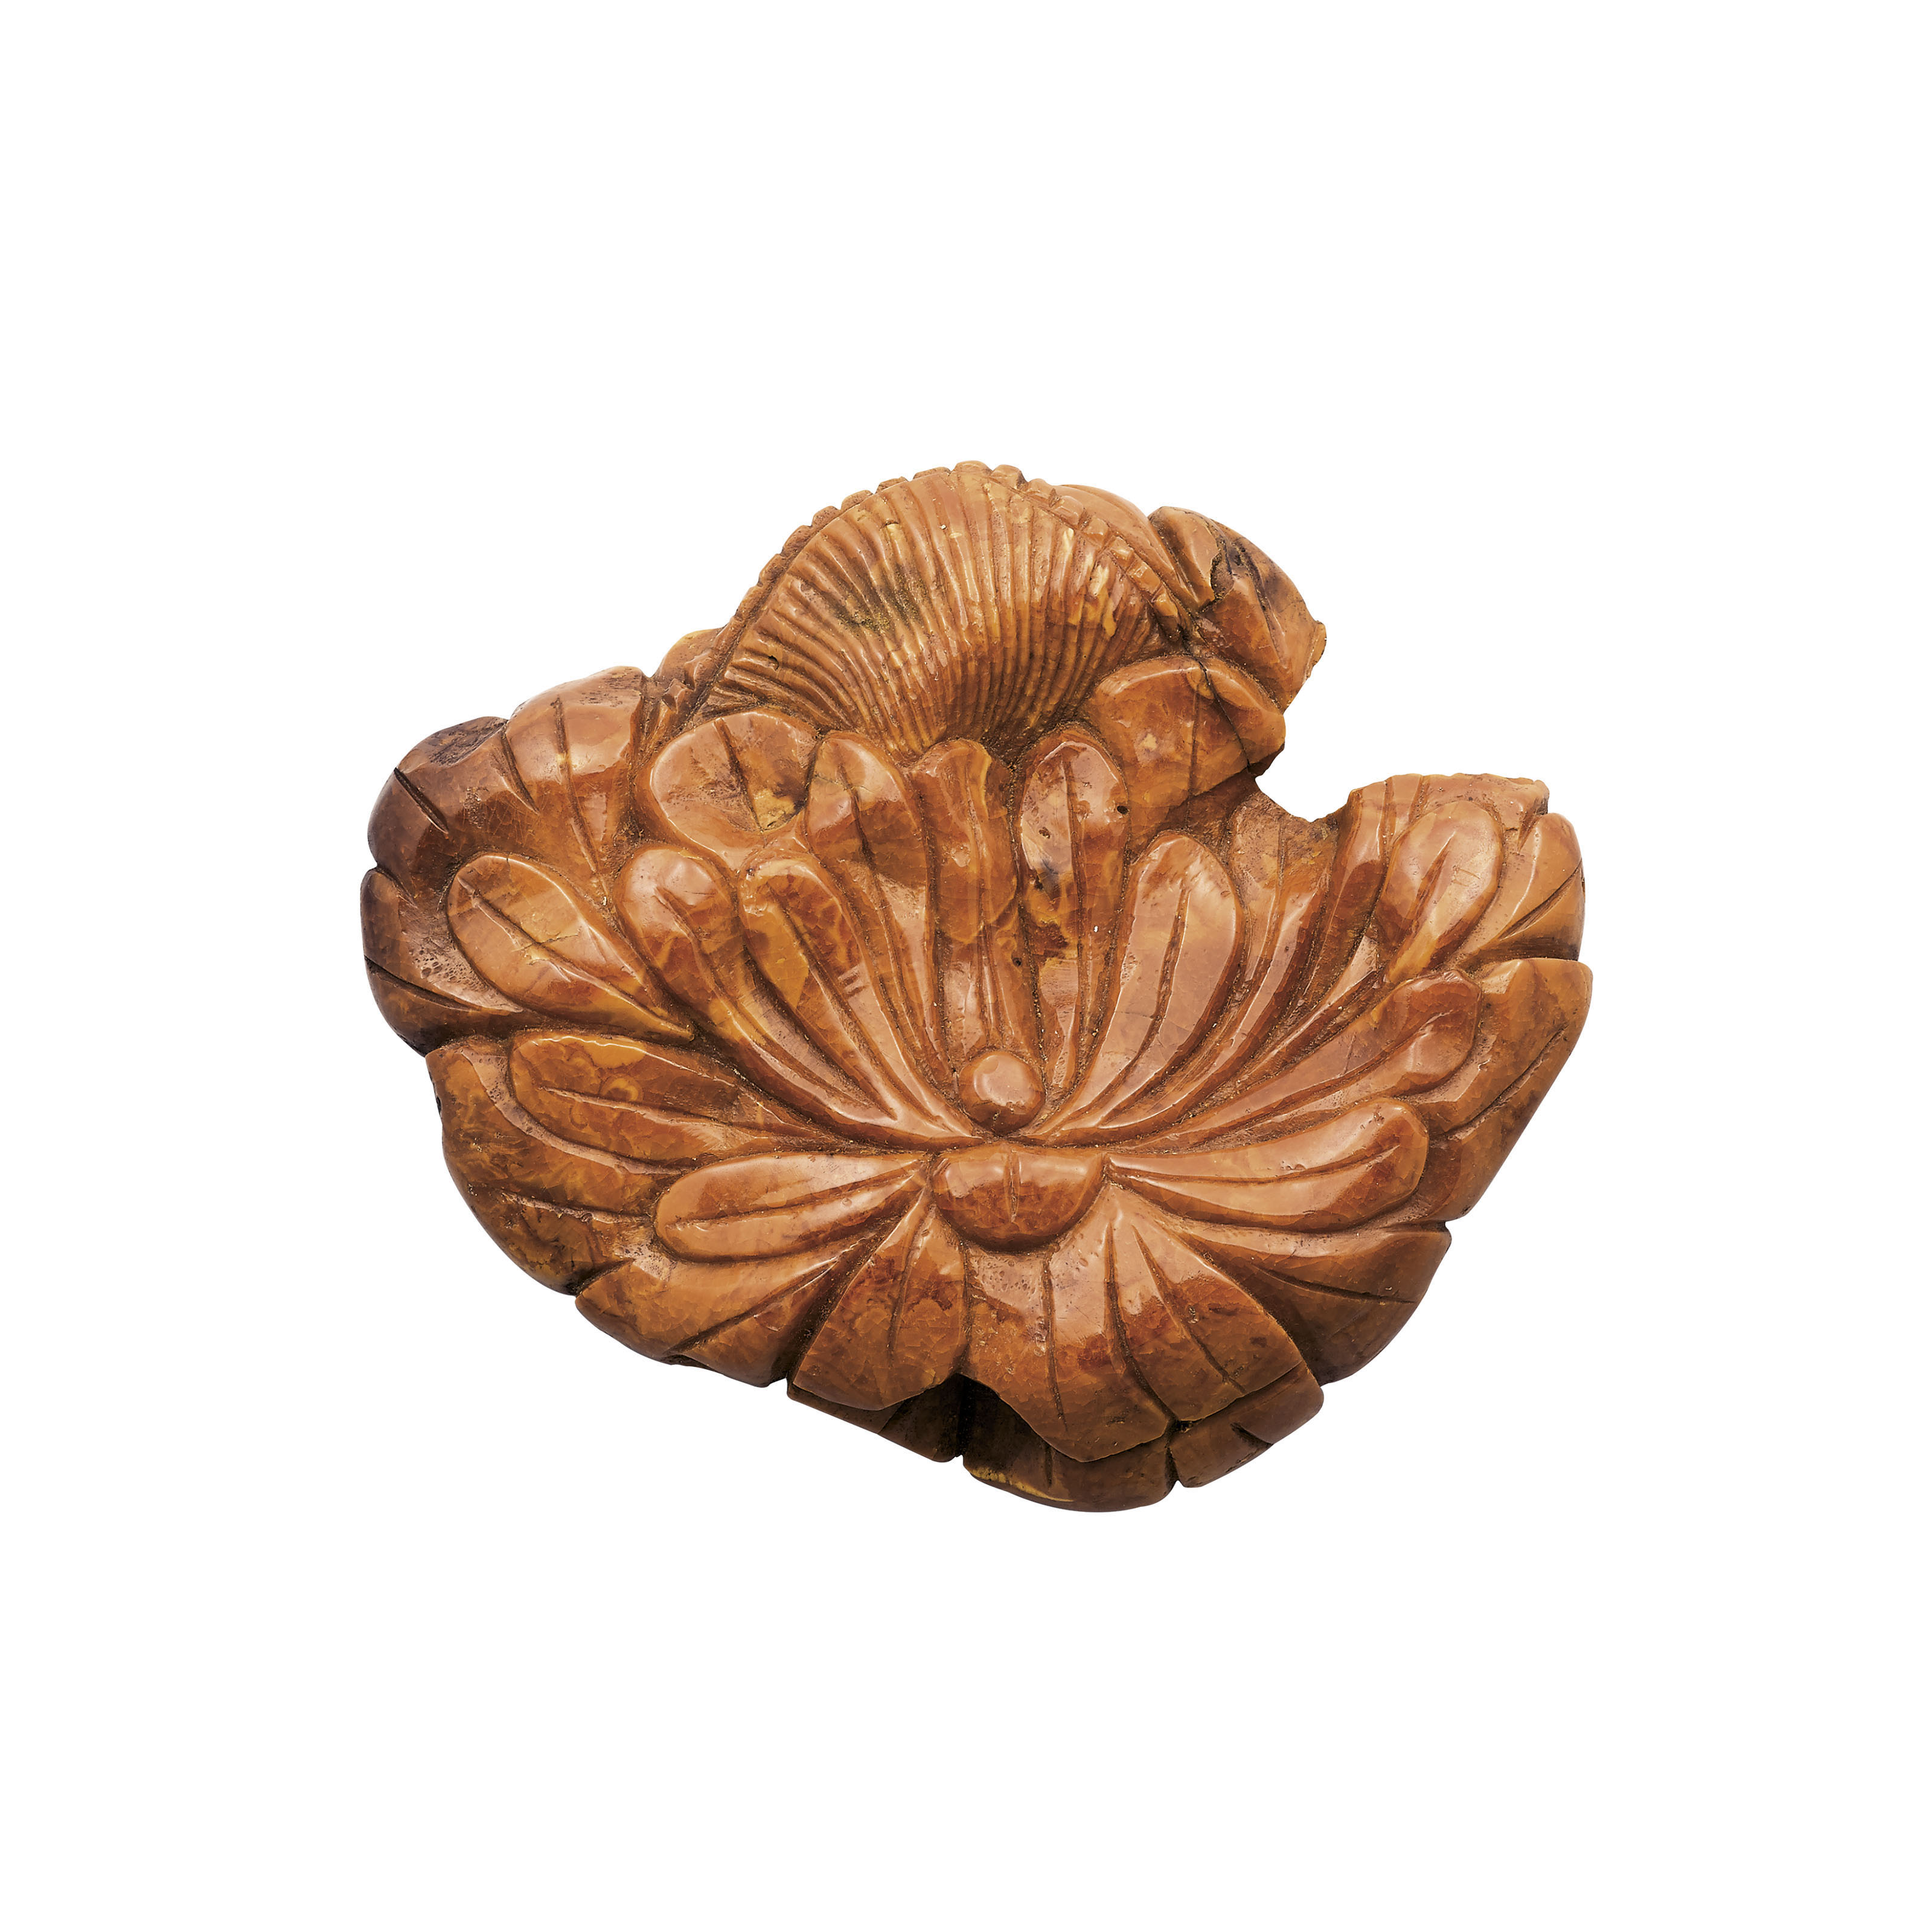 A LARGE AMBER FLORAL CARVING